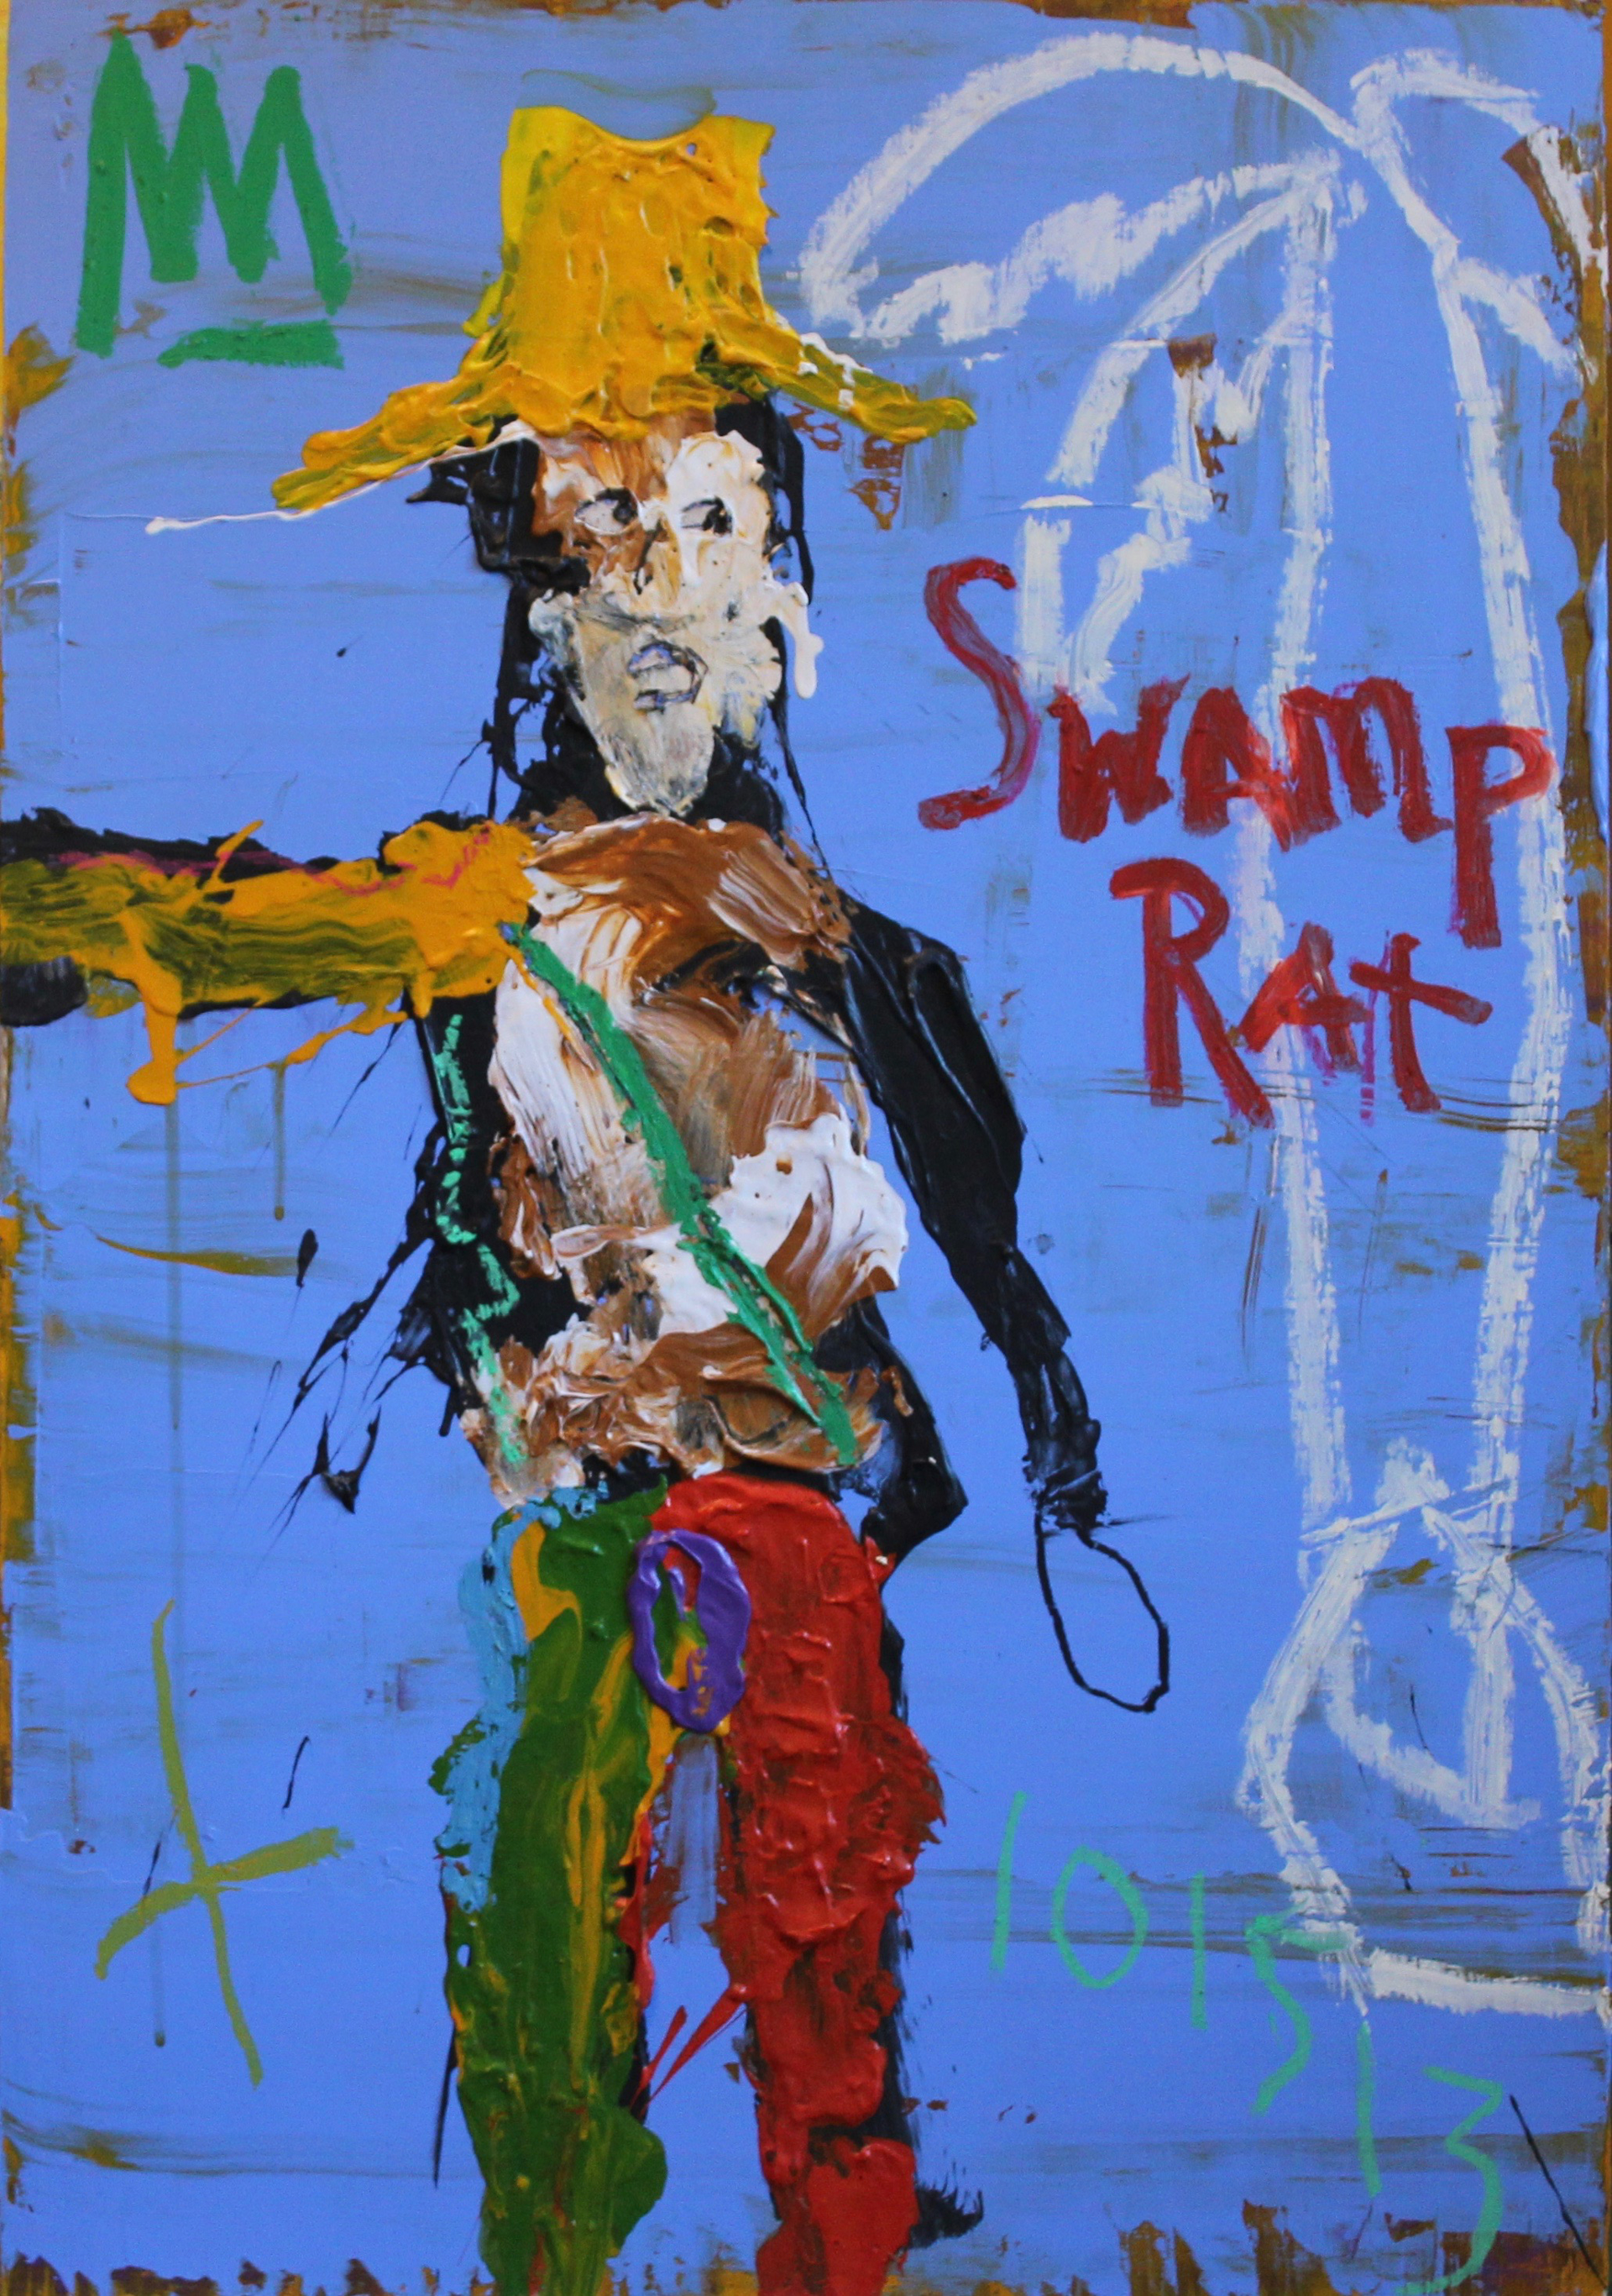 Swamp Rat by Michael Snodgrass